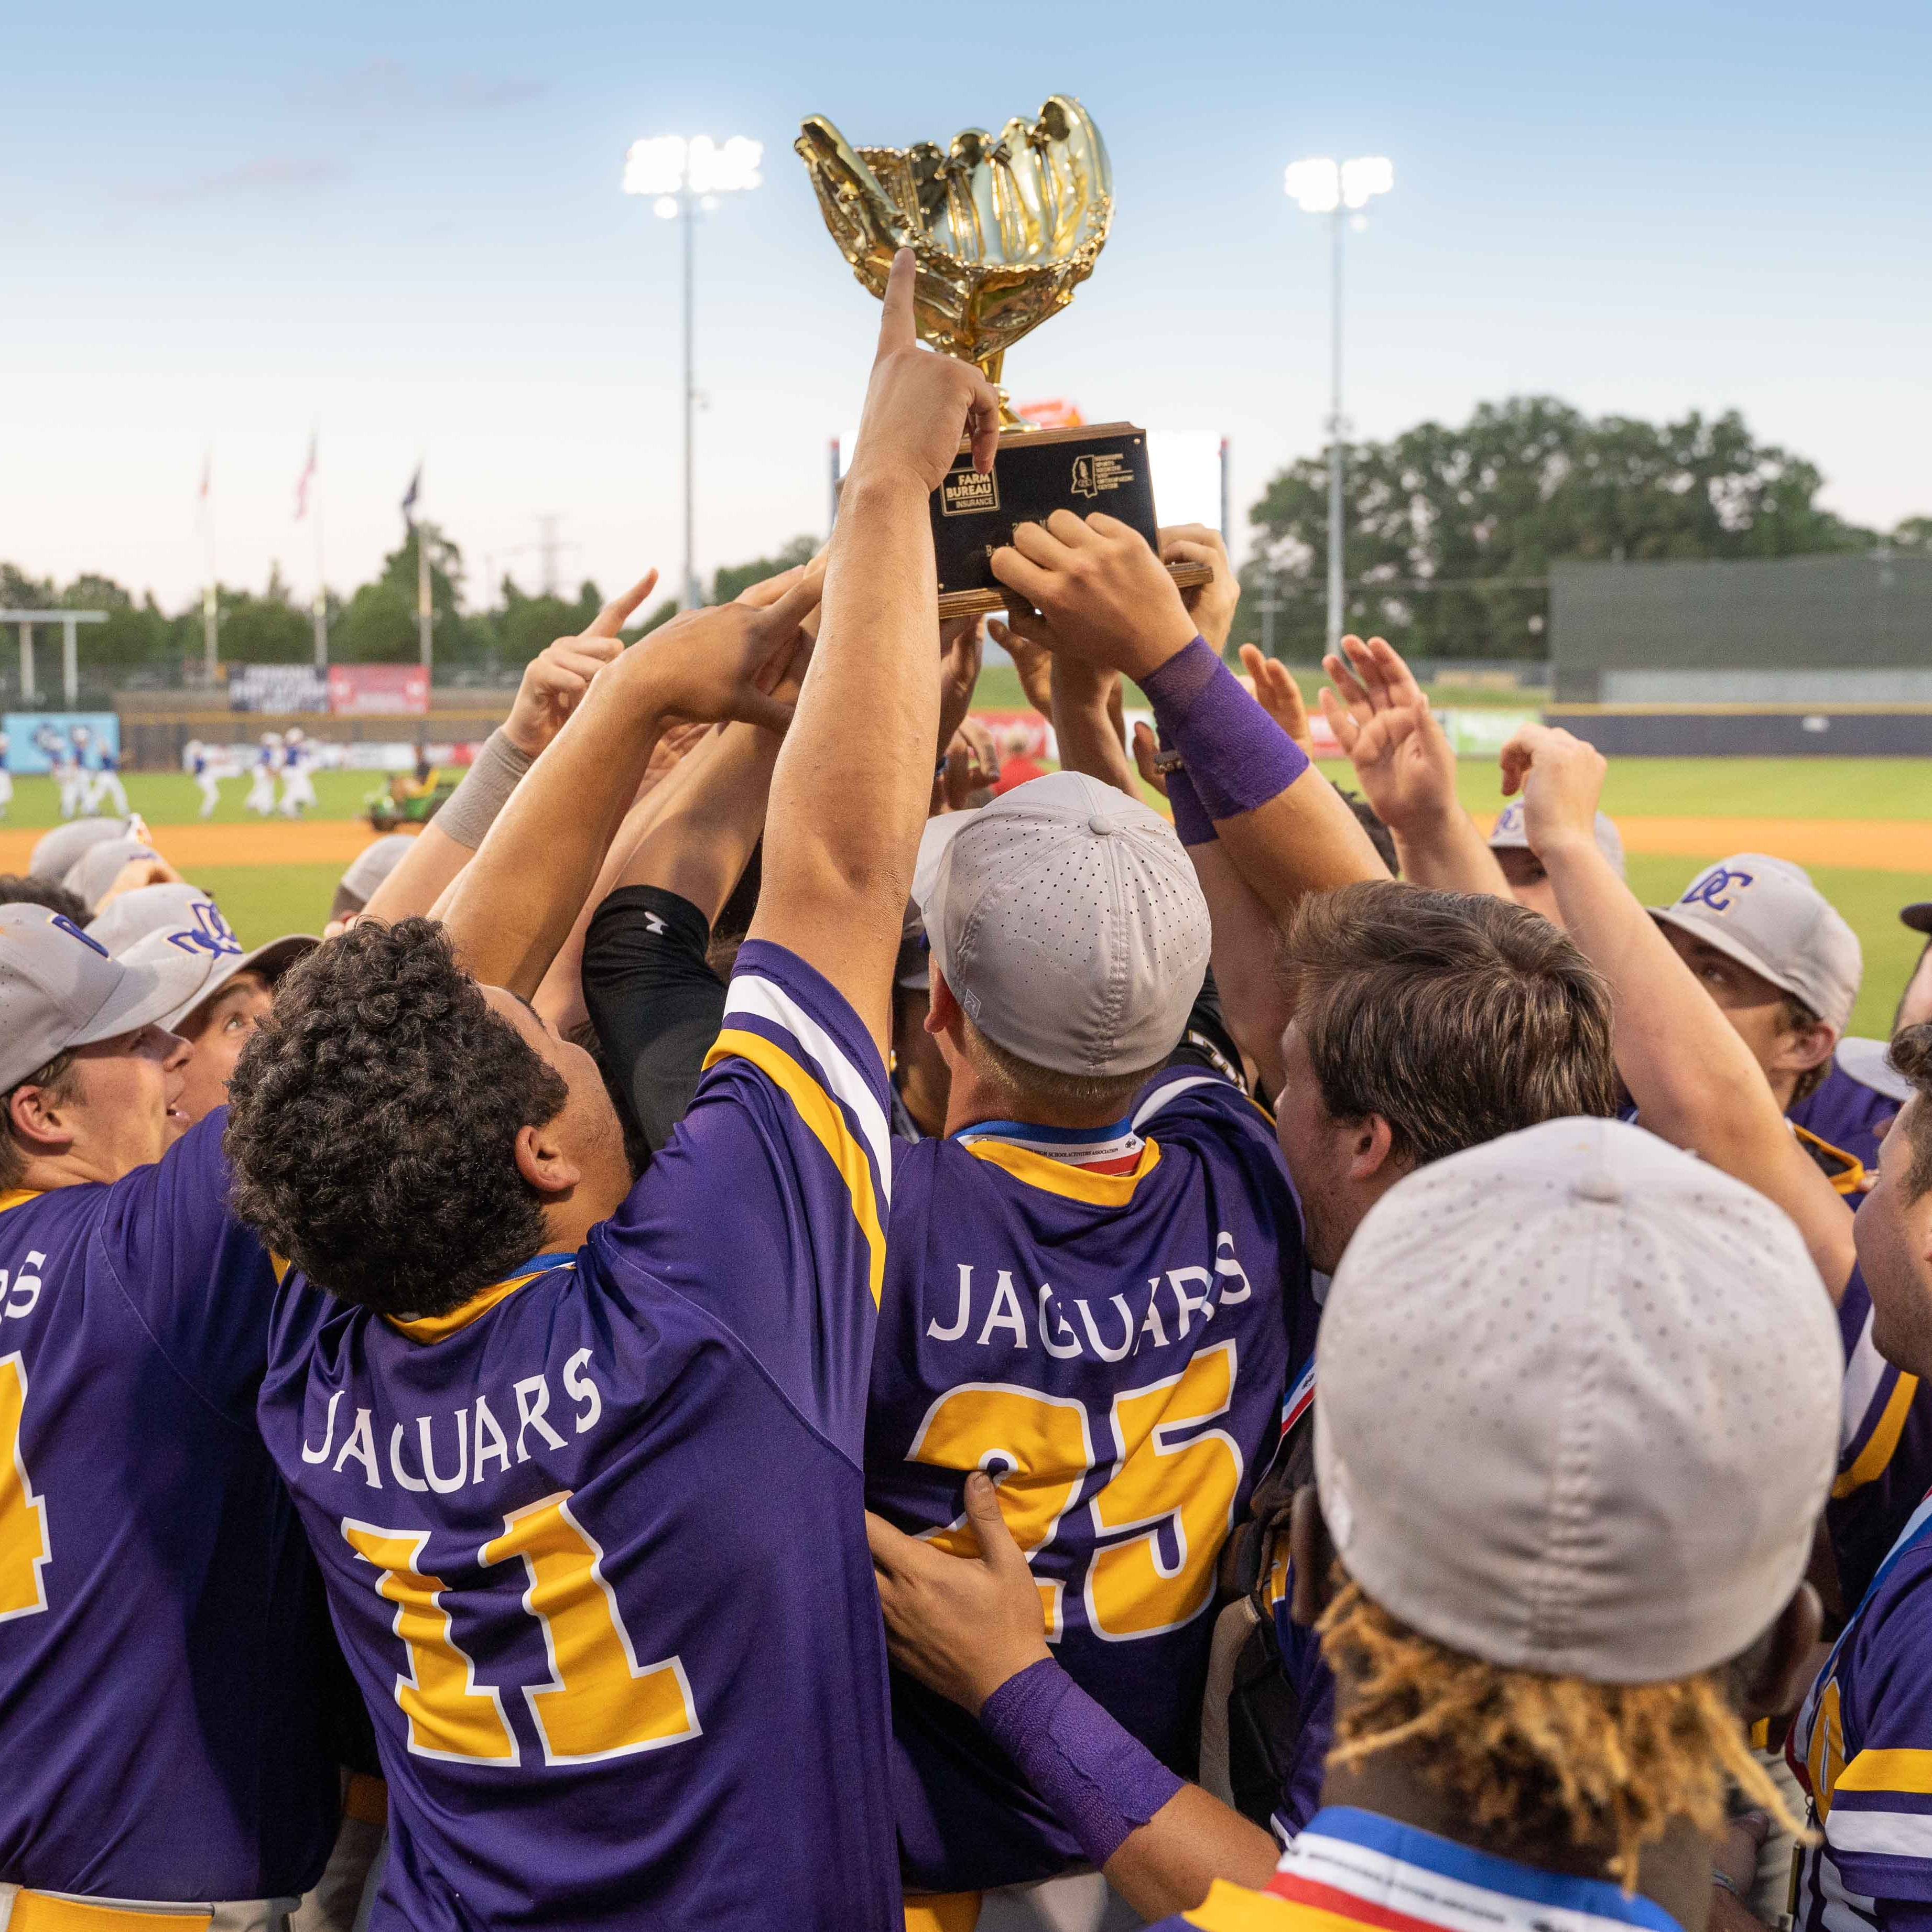 Desoto Central players celebrate with the trophy following their win over St. Martin in the MHSAA 6A Baseball Championship held at the Trustmark Park in Pearl on Friday, May 17, 2019.